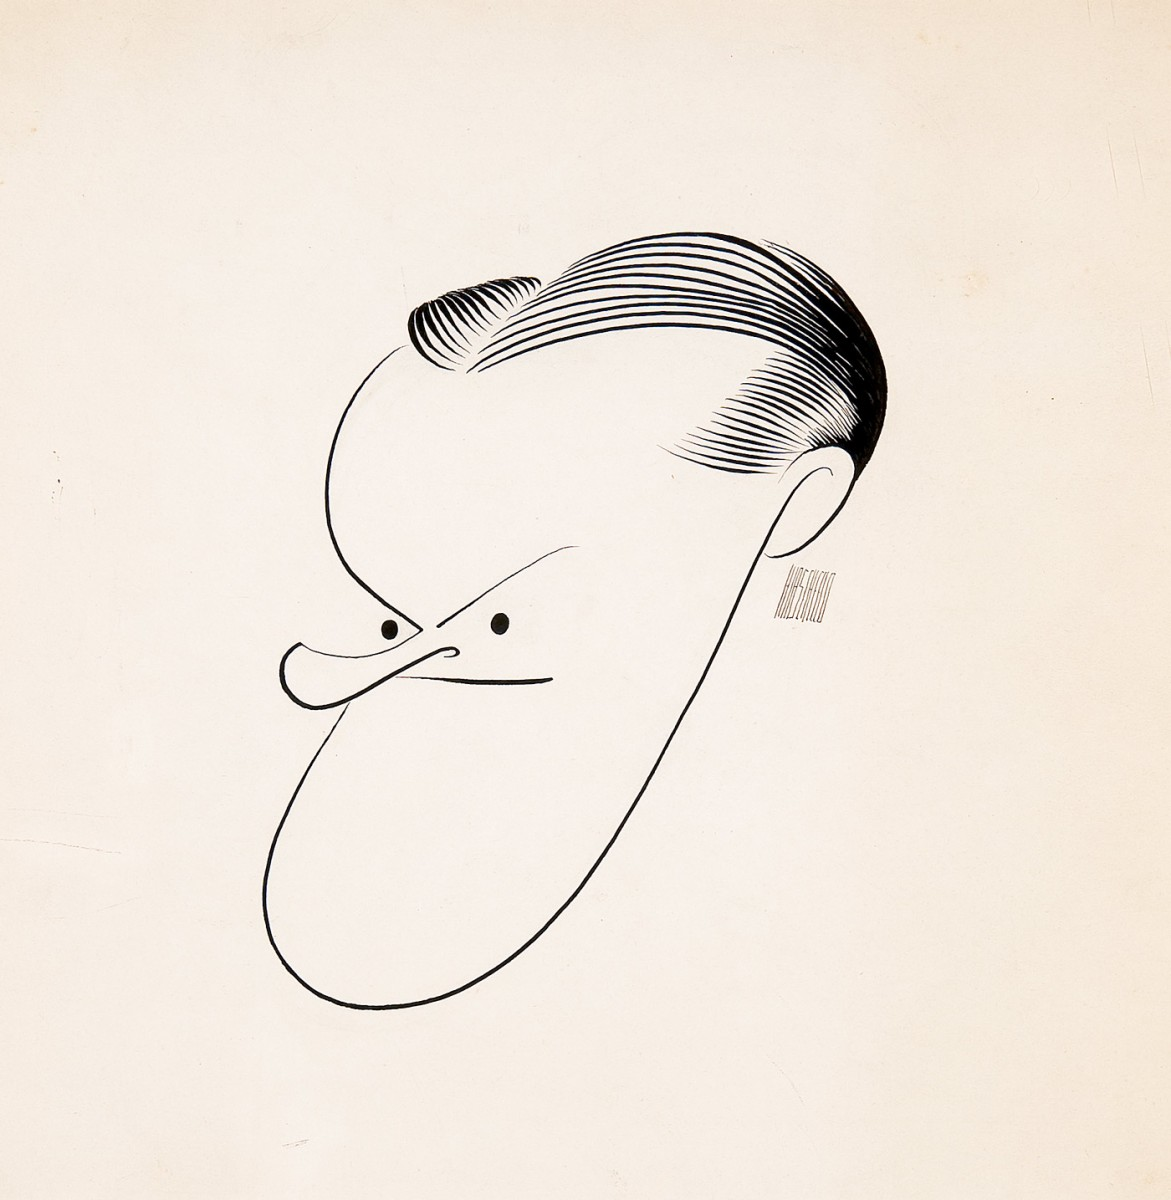 Al Hirschfeld (1903-2003), Bob Hope, 1940s, Ink on paper, Museum purchase, 2010